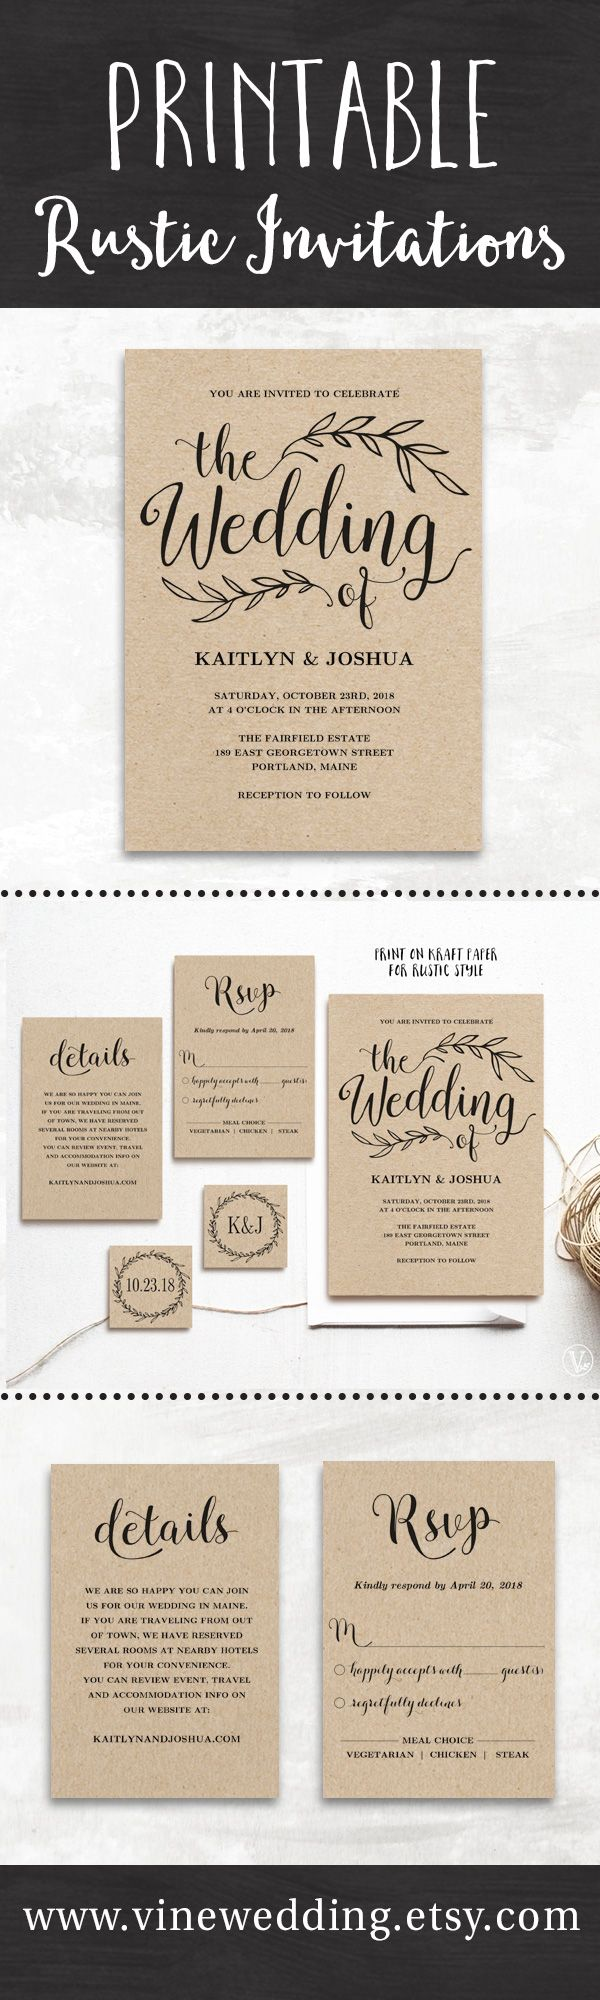 ideas for country wedding invitations%0A Beautiful rustic wedding invitations  Editable instant download templates  you can print as many as you